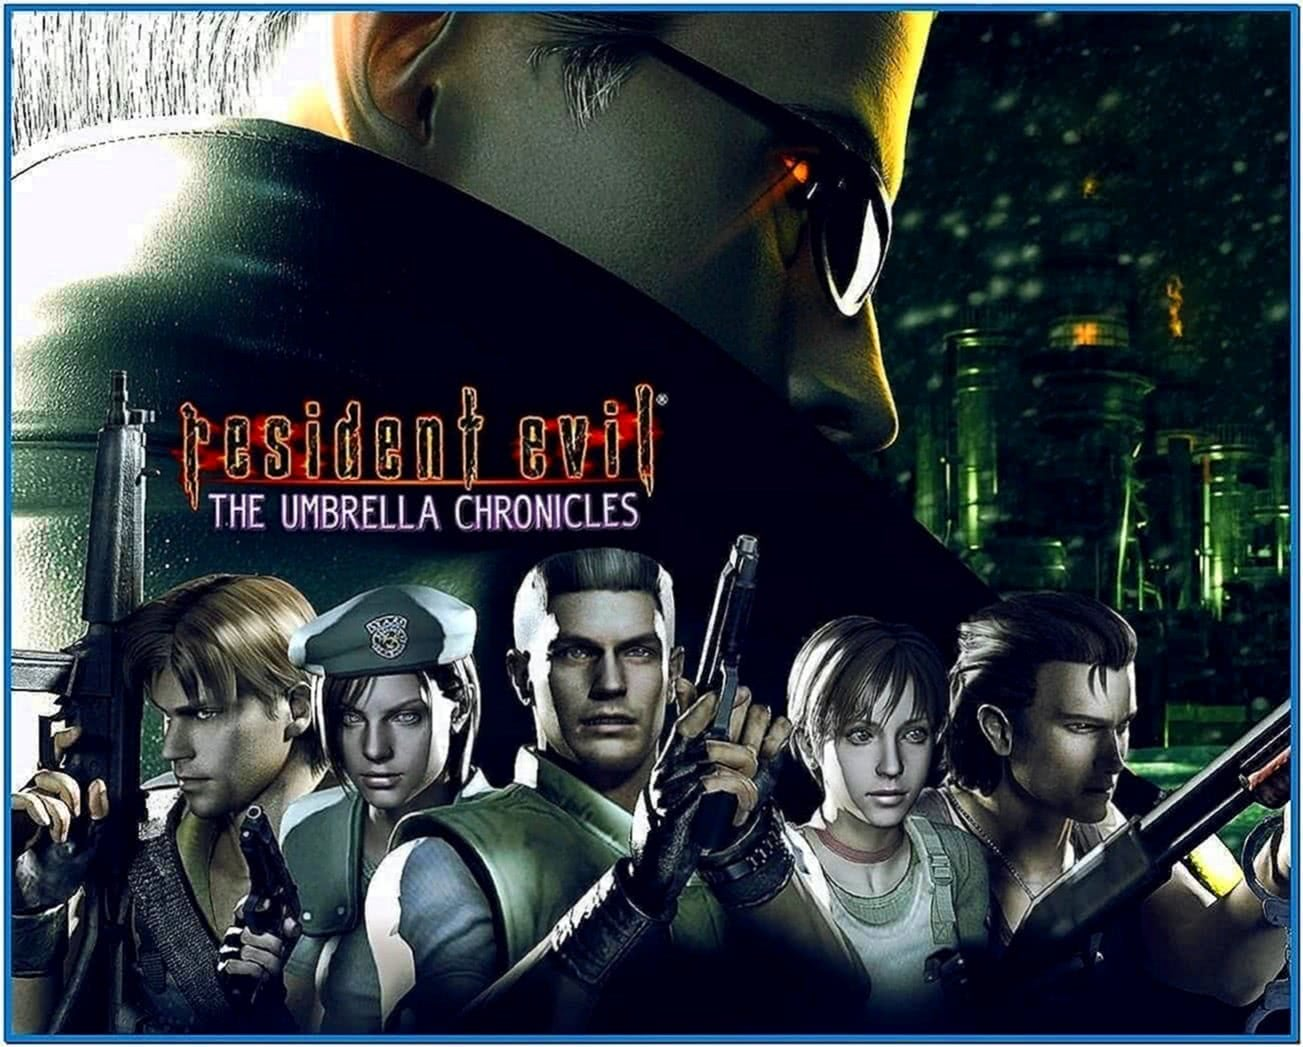 Resident evil umbrella chronicles screensaver